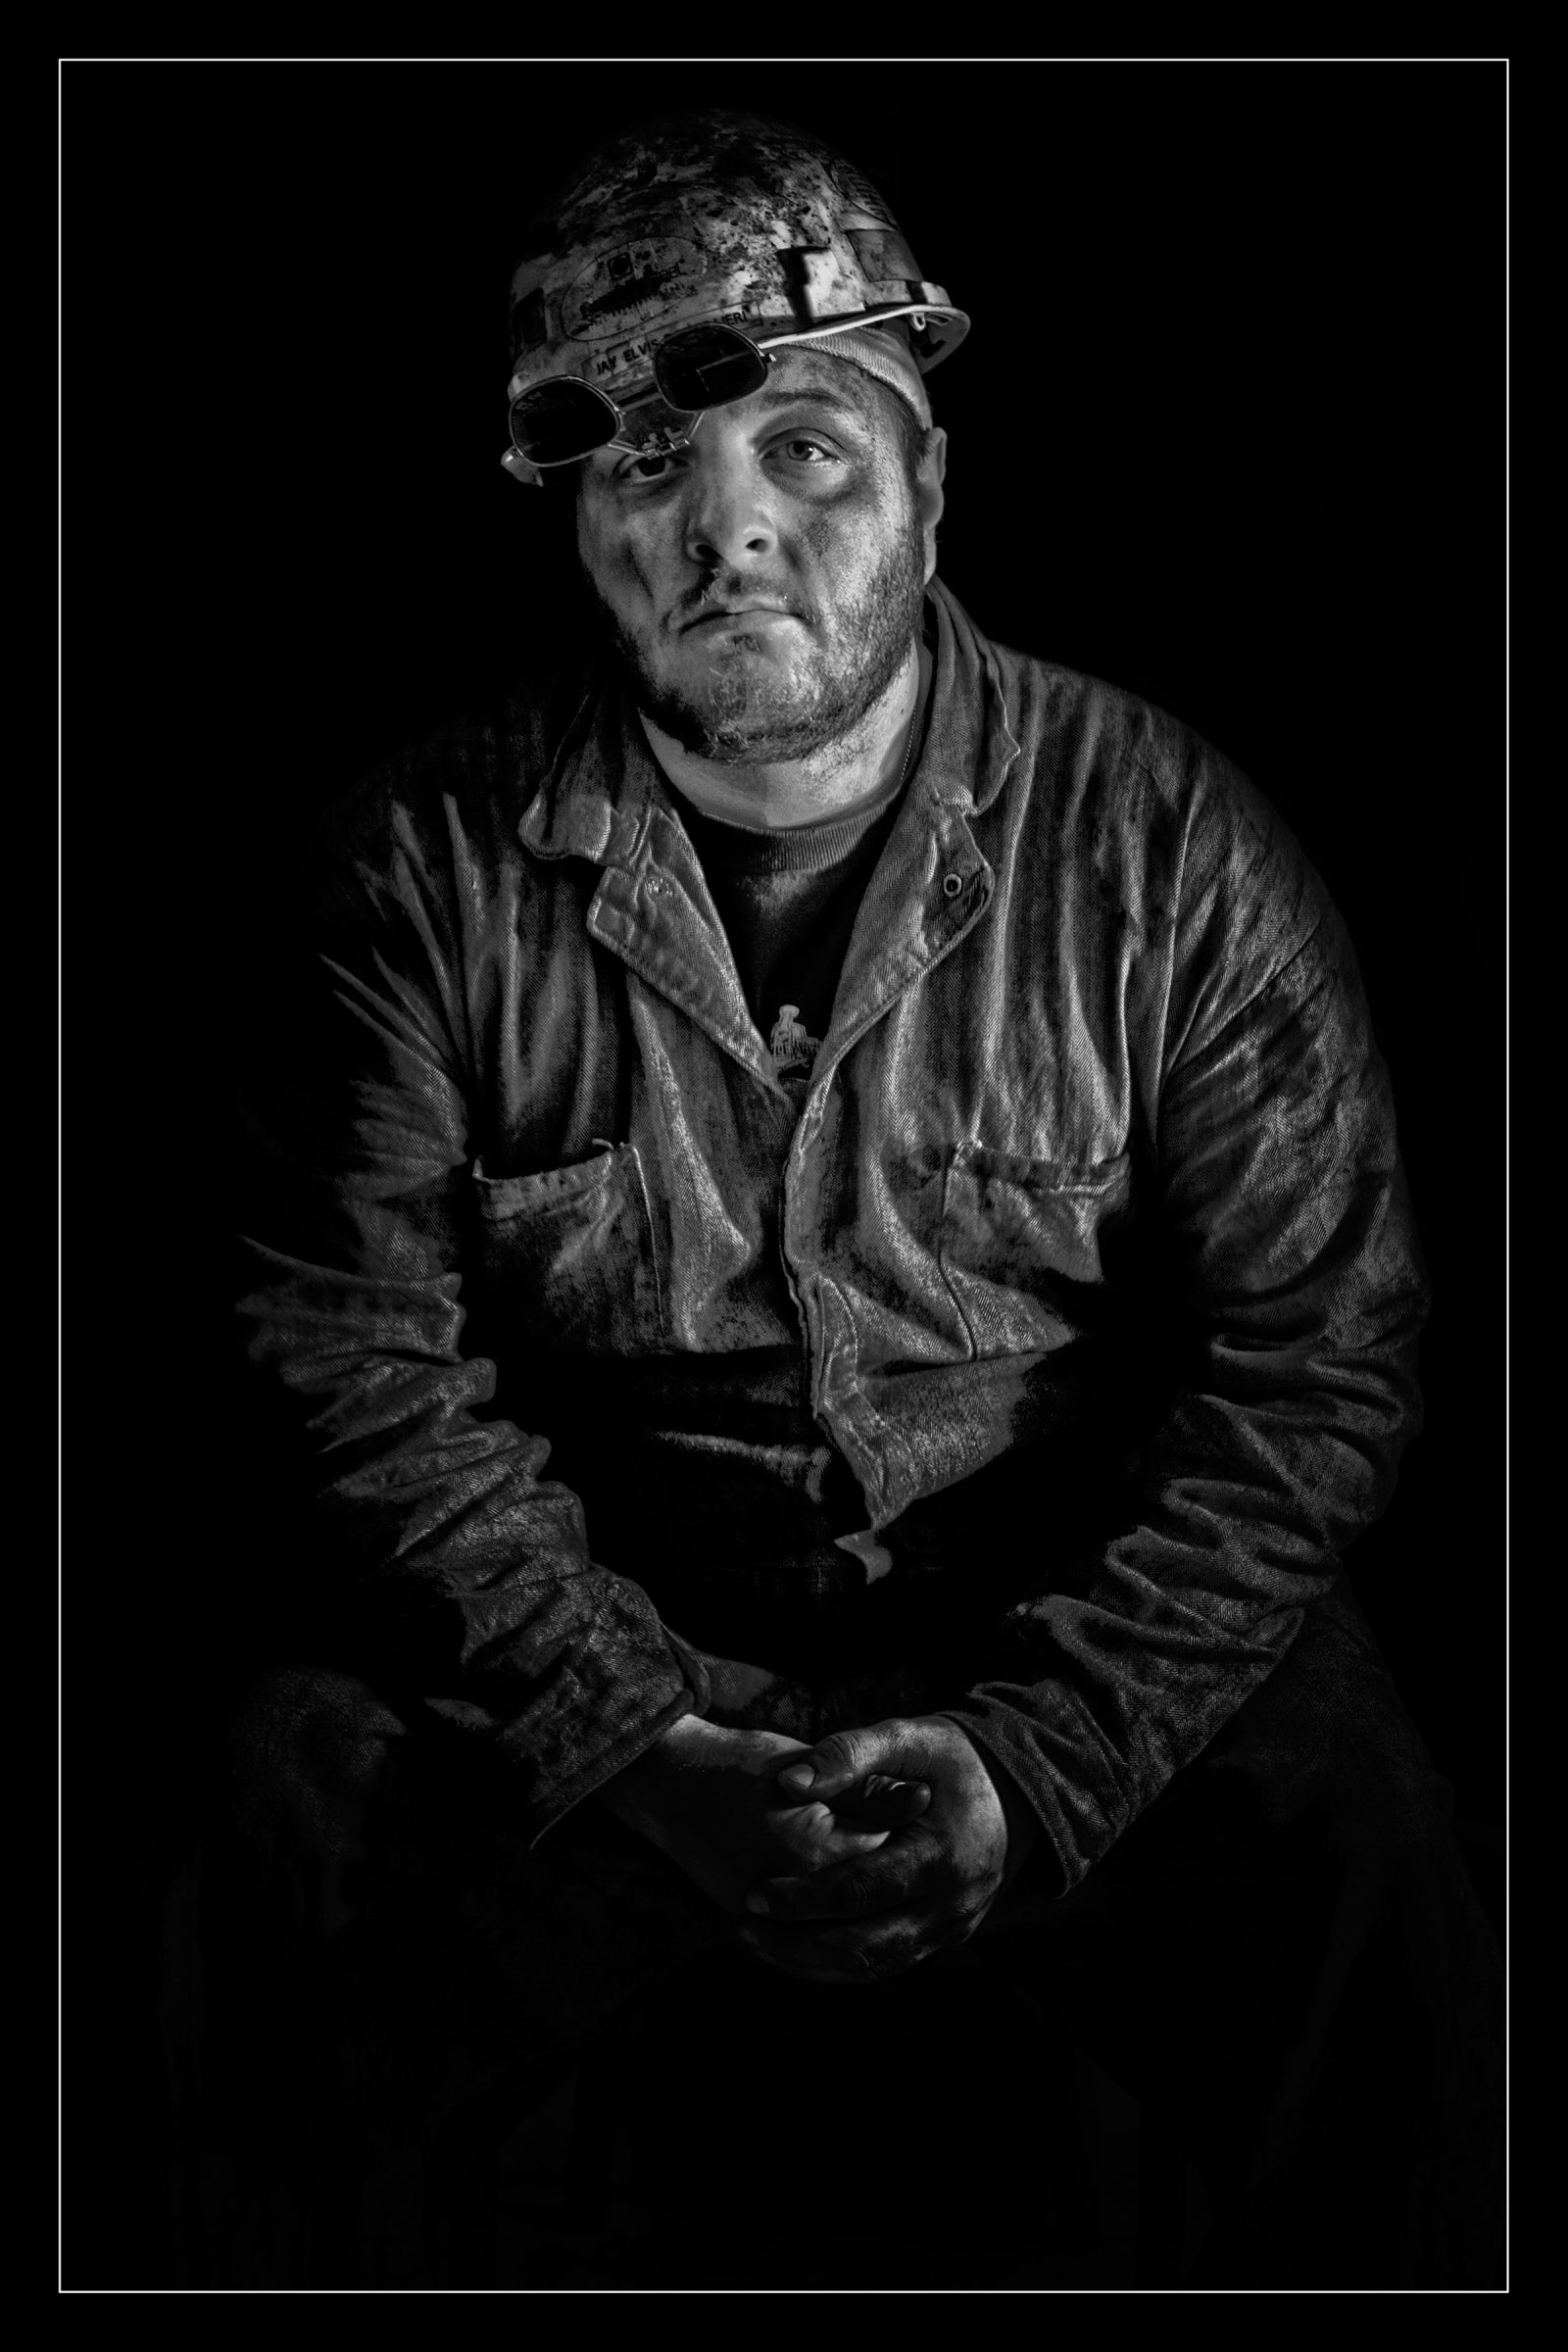 'The Steelworker,' a photograph by Phil Pantano on view as part of his exhibition 'The American Worker' in Main Street Studios.